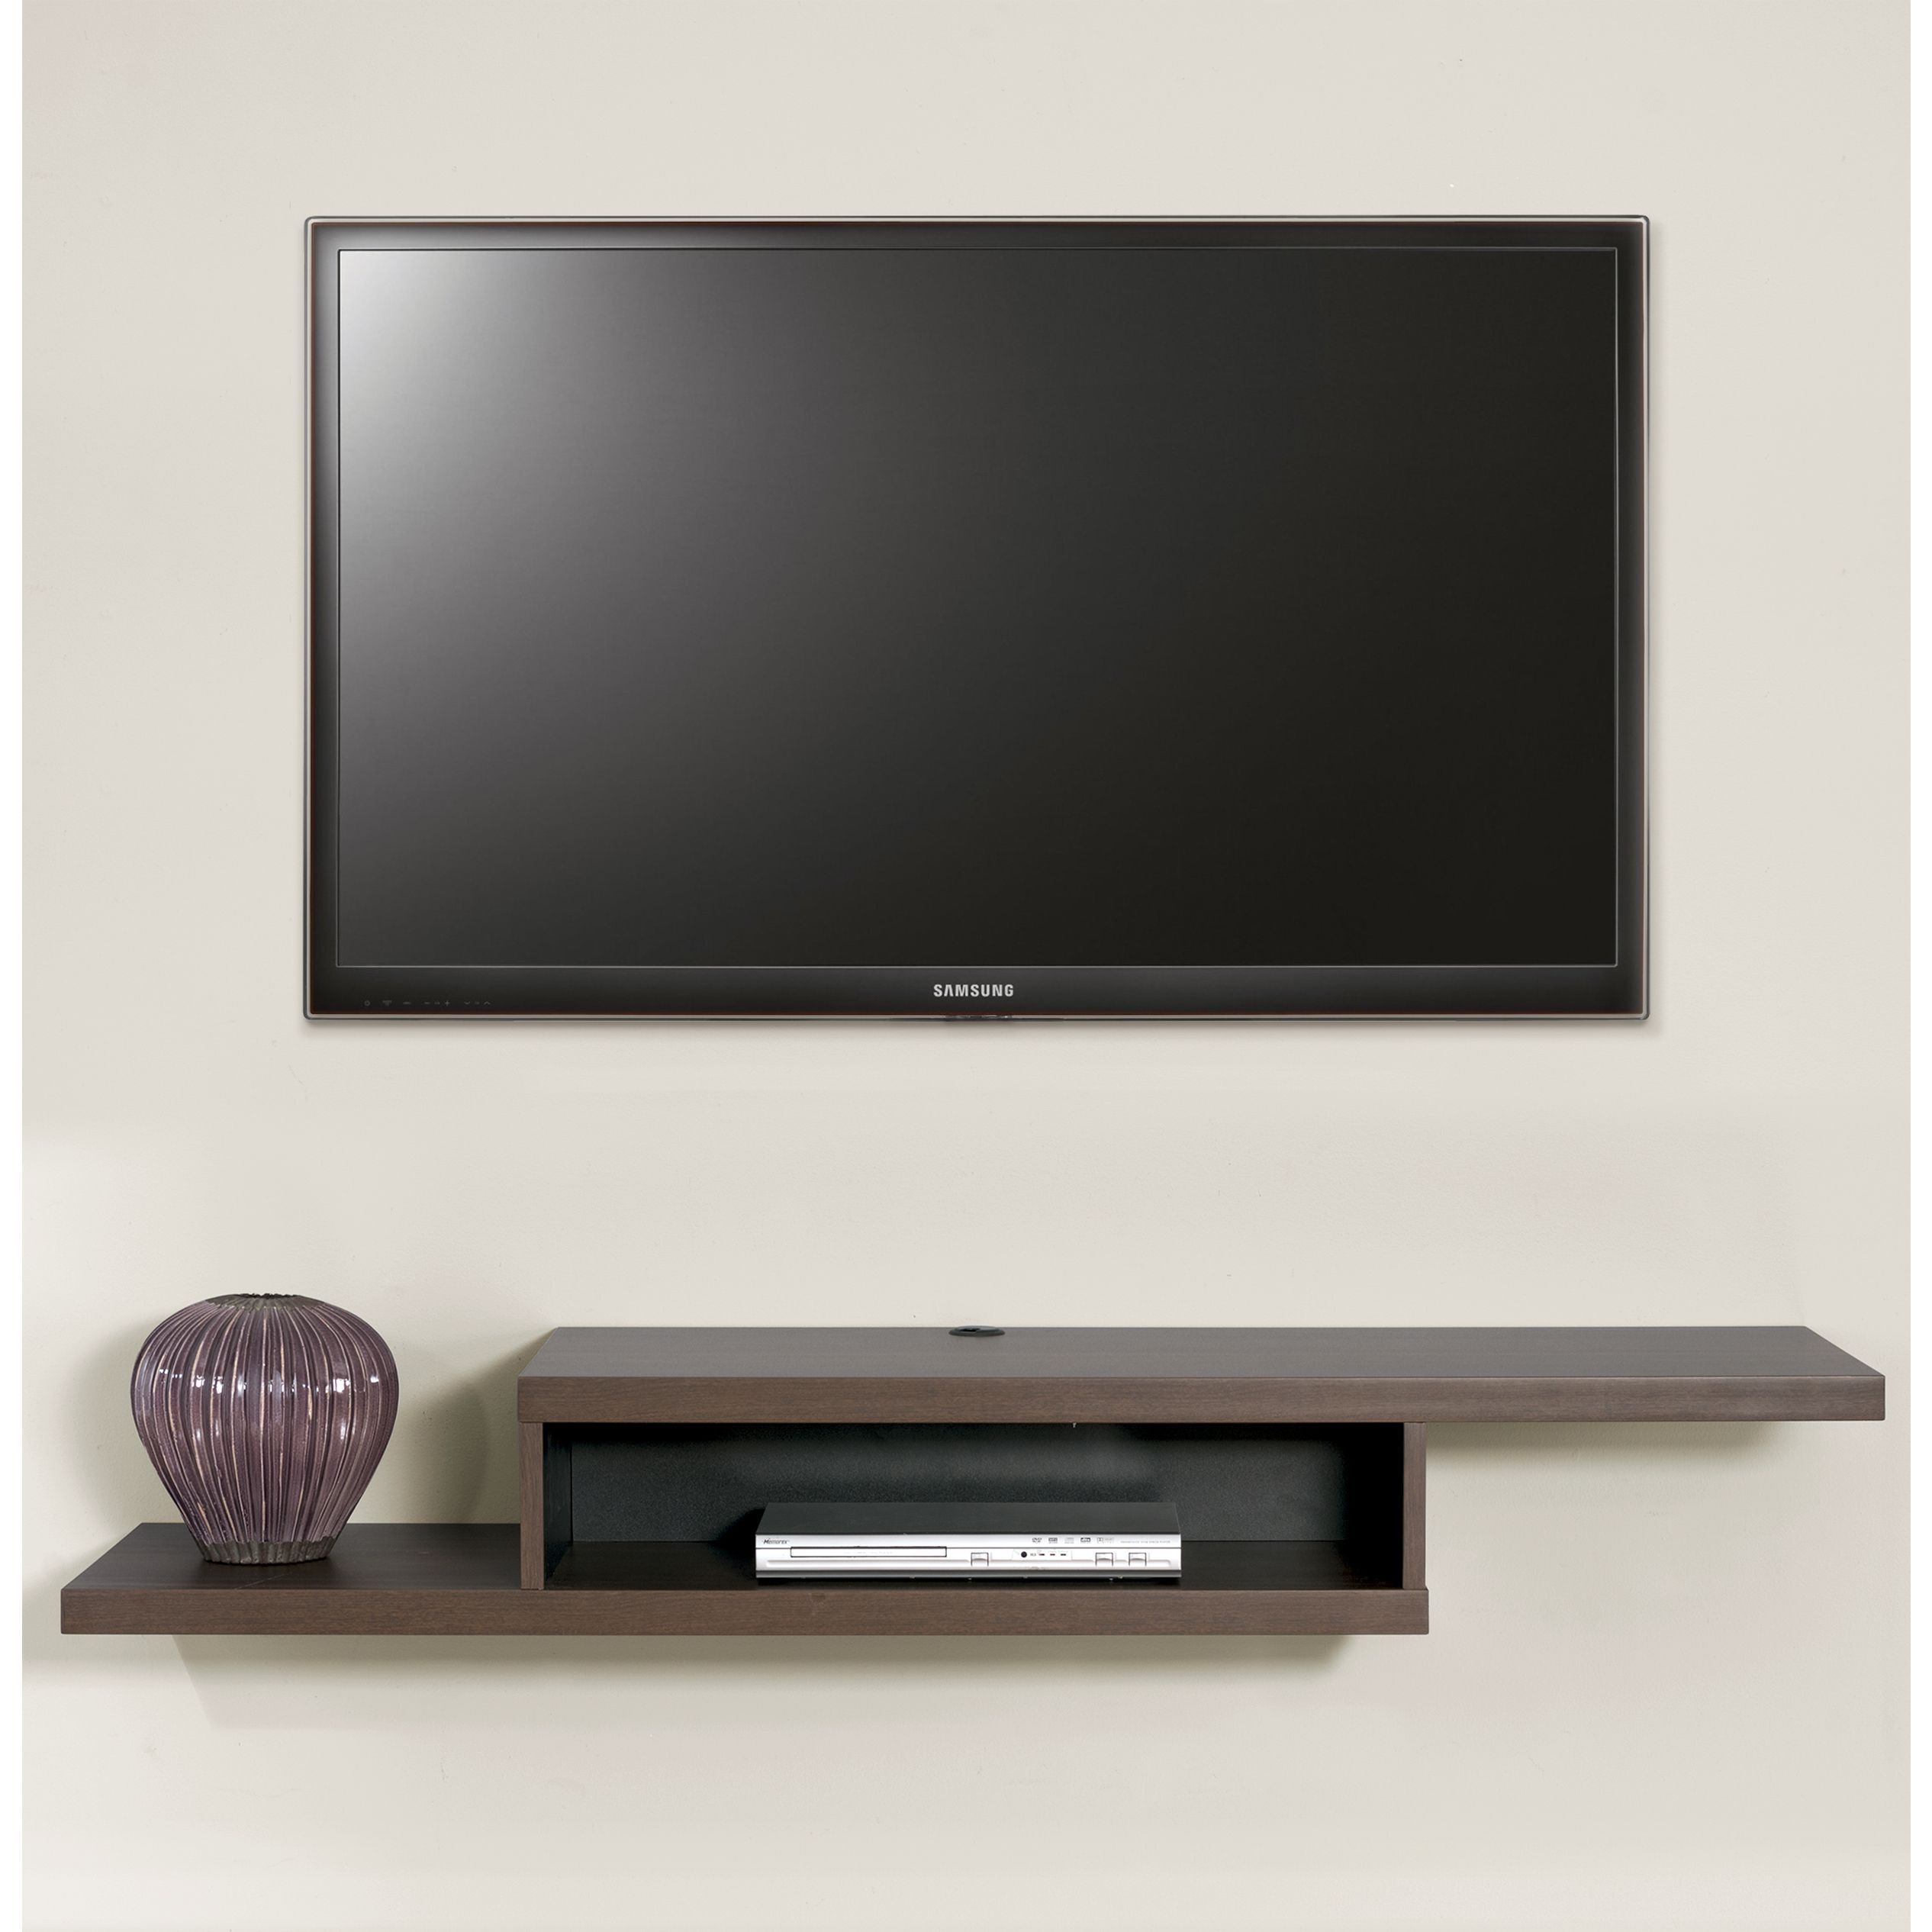 Floating Wall Mounted Tv Unit This Wall Mounted Tv Console Has A Modern Flair With The